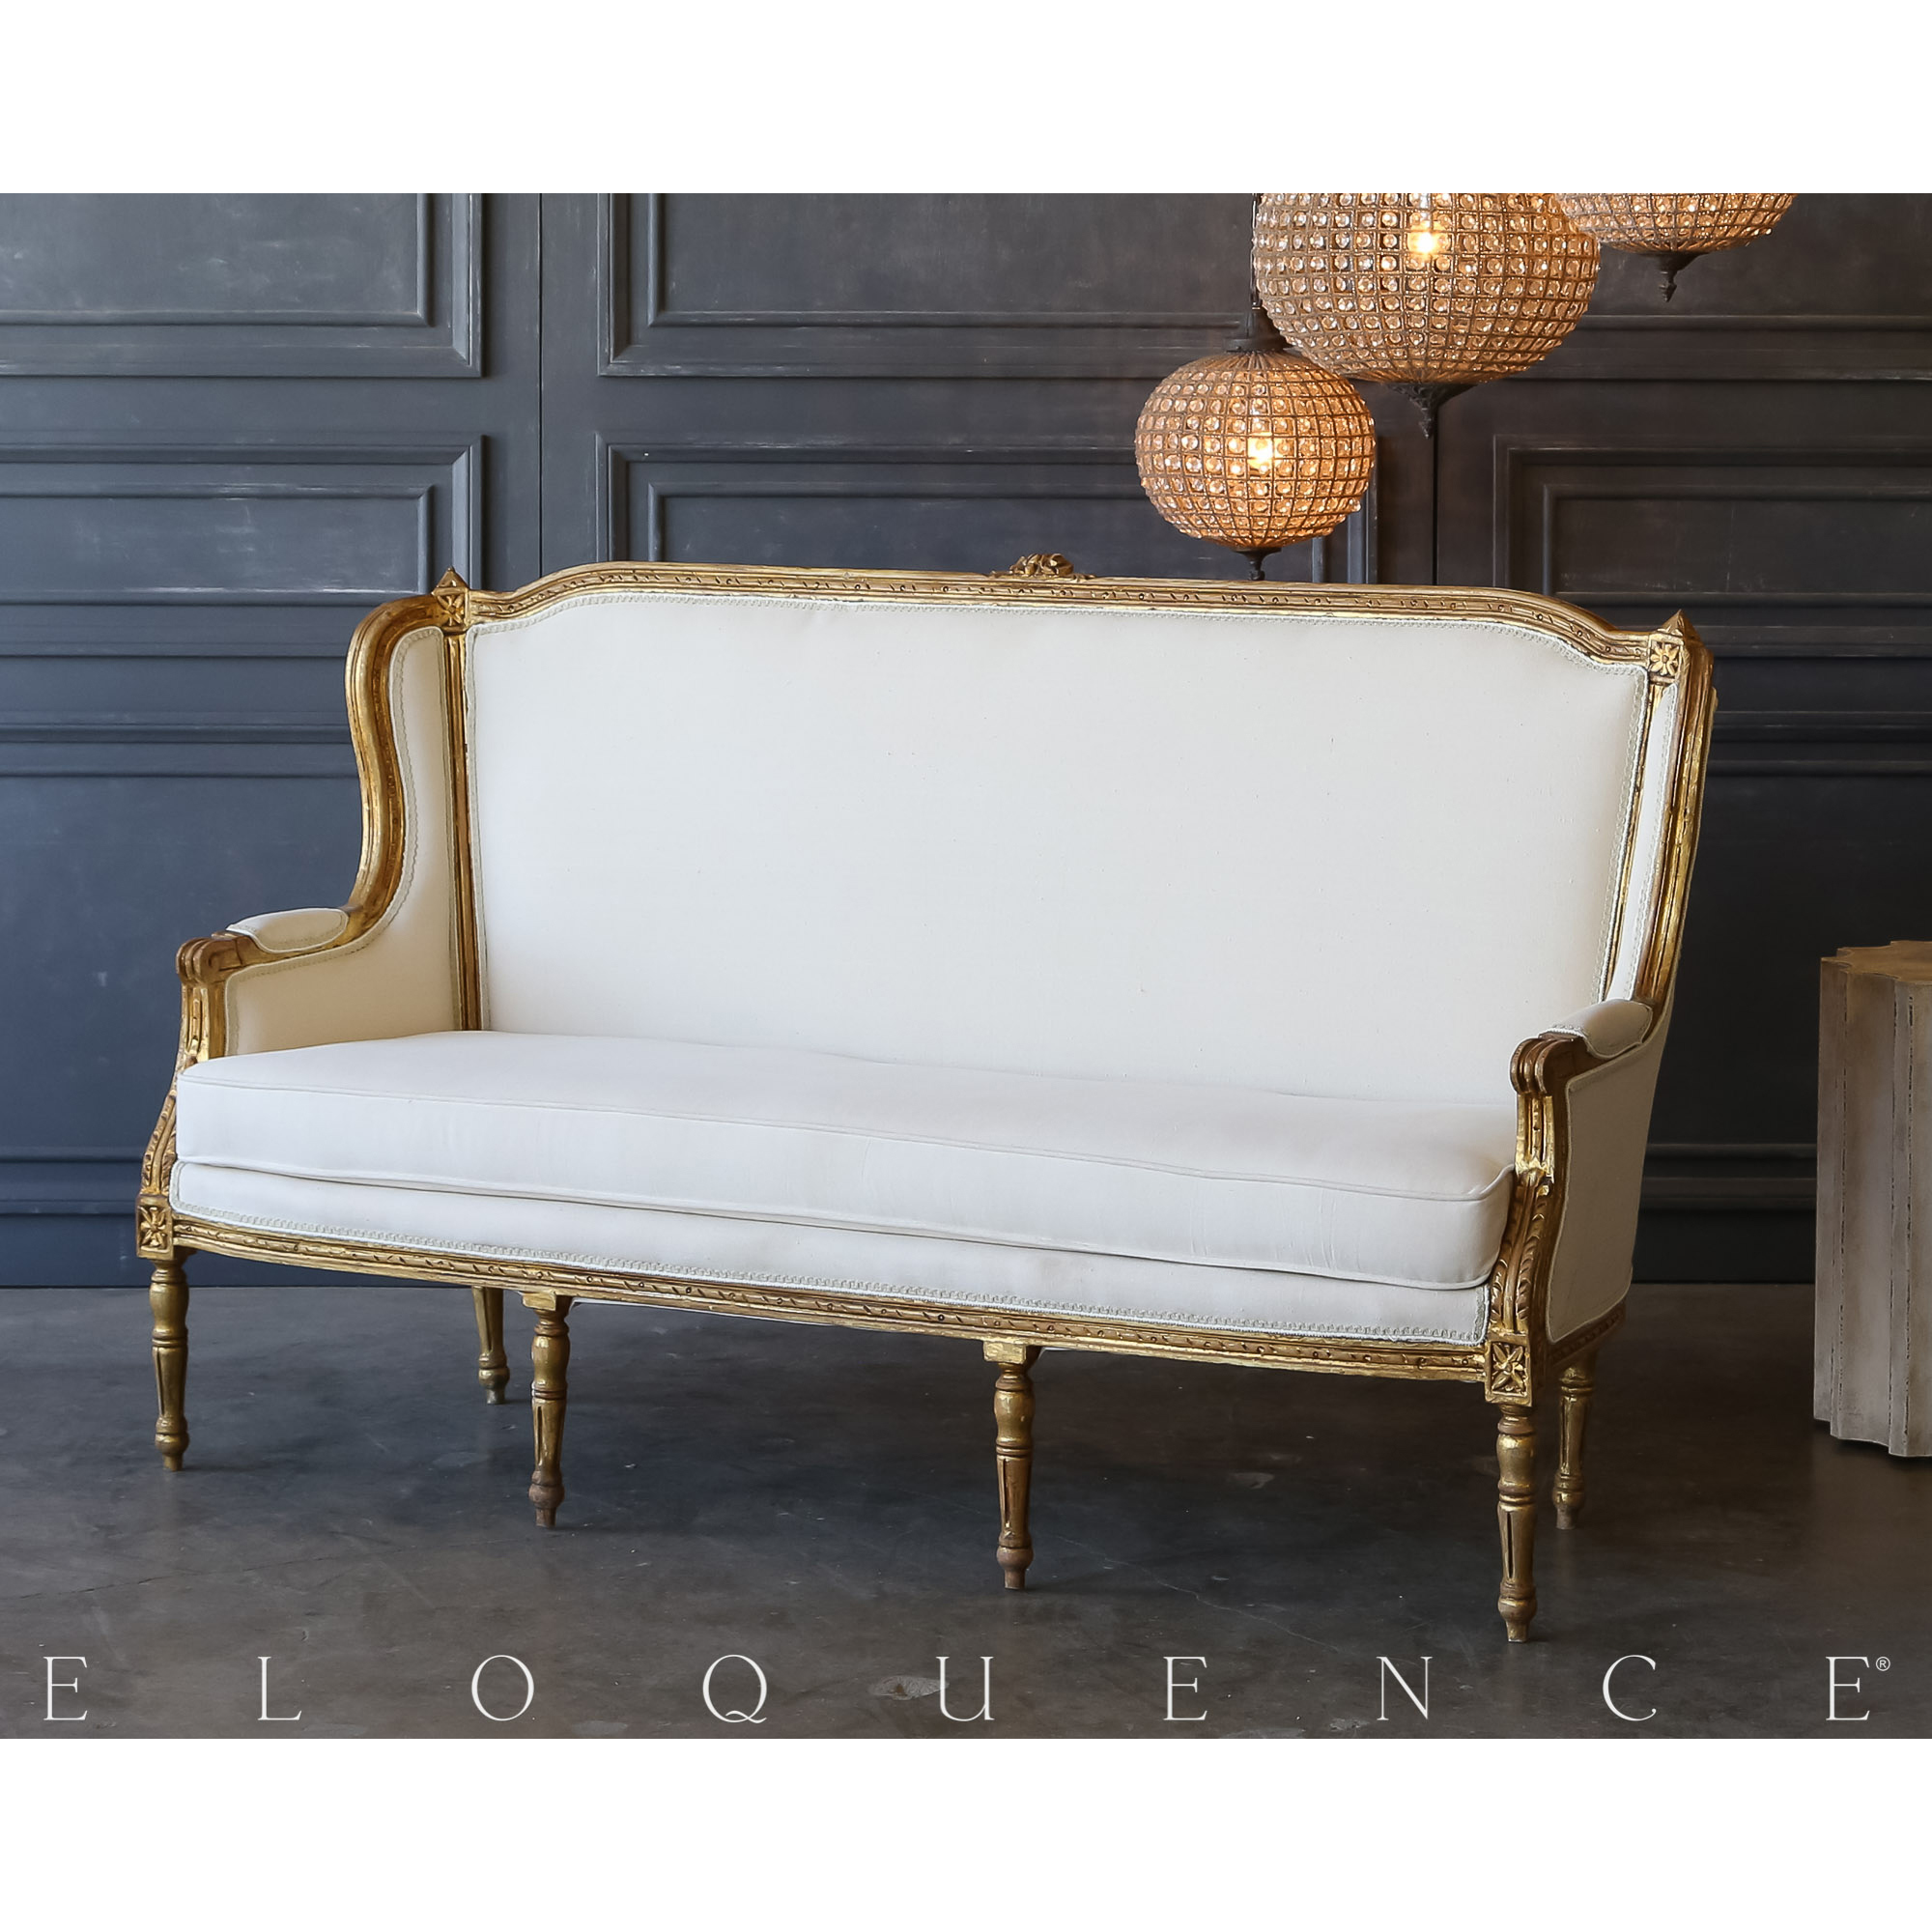 Eloquence® Vintage Bright Gold Louis Settee: 1940